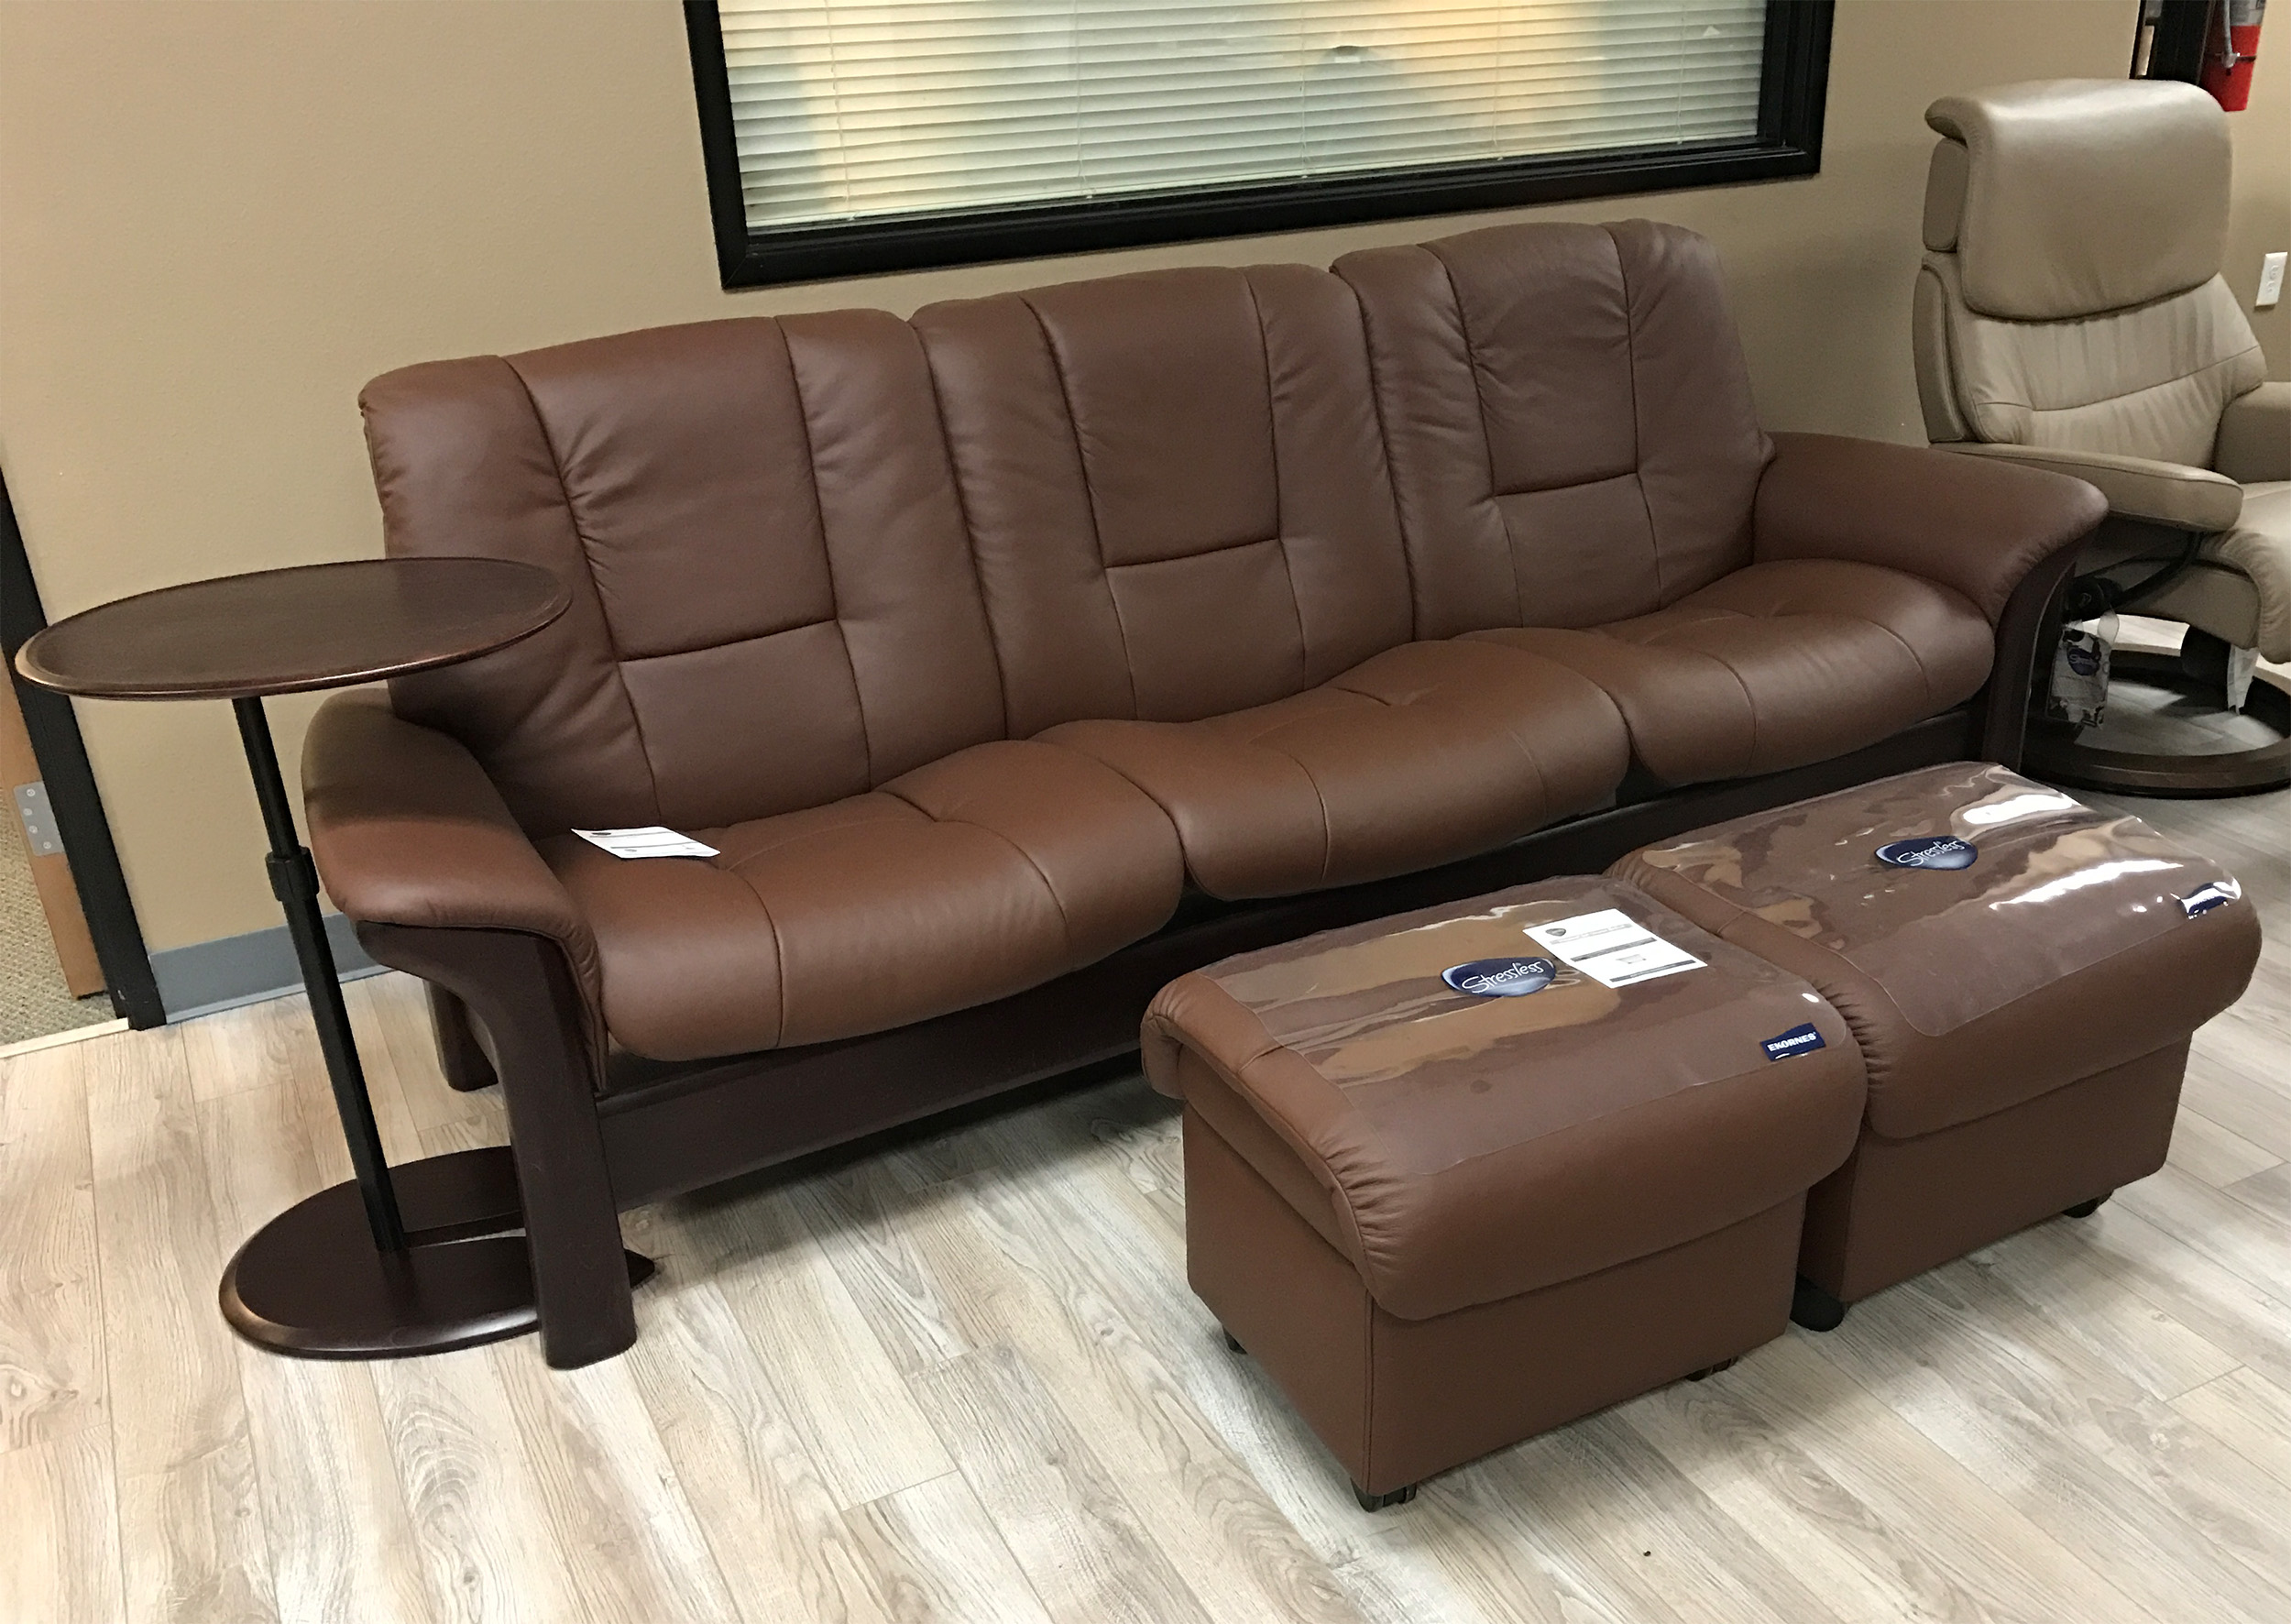 Ekornes chairs for sale stressless paloma indigo leather by ekornes - Stressless Ottoman Soft Medium By Ekornes Buckingham Low Back Sofa In Paloma Brown Leather With Medium Soft Ottomans